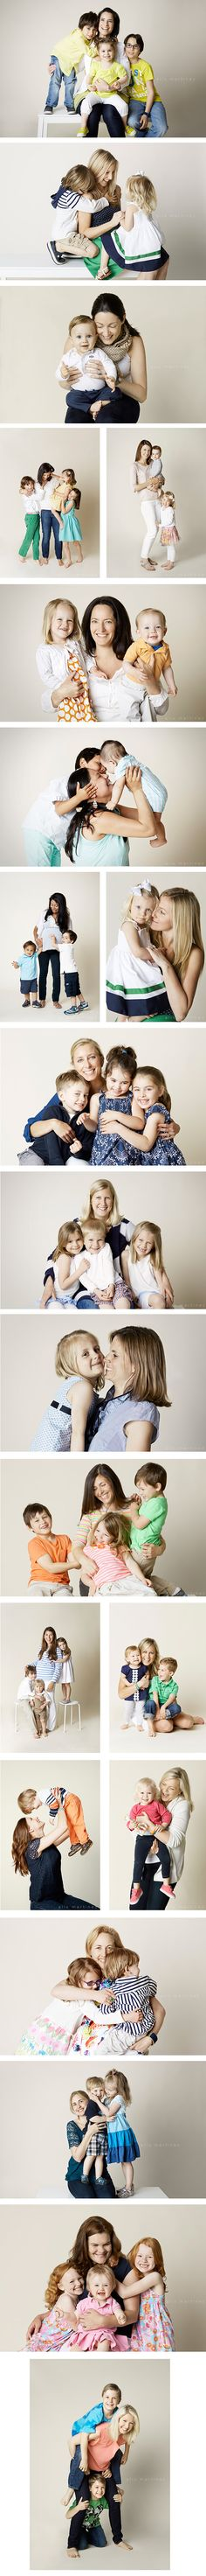 mothers day photographs, studio photography of mothers and children, @ alix martinez photography